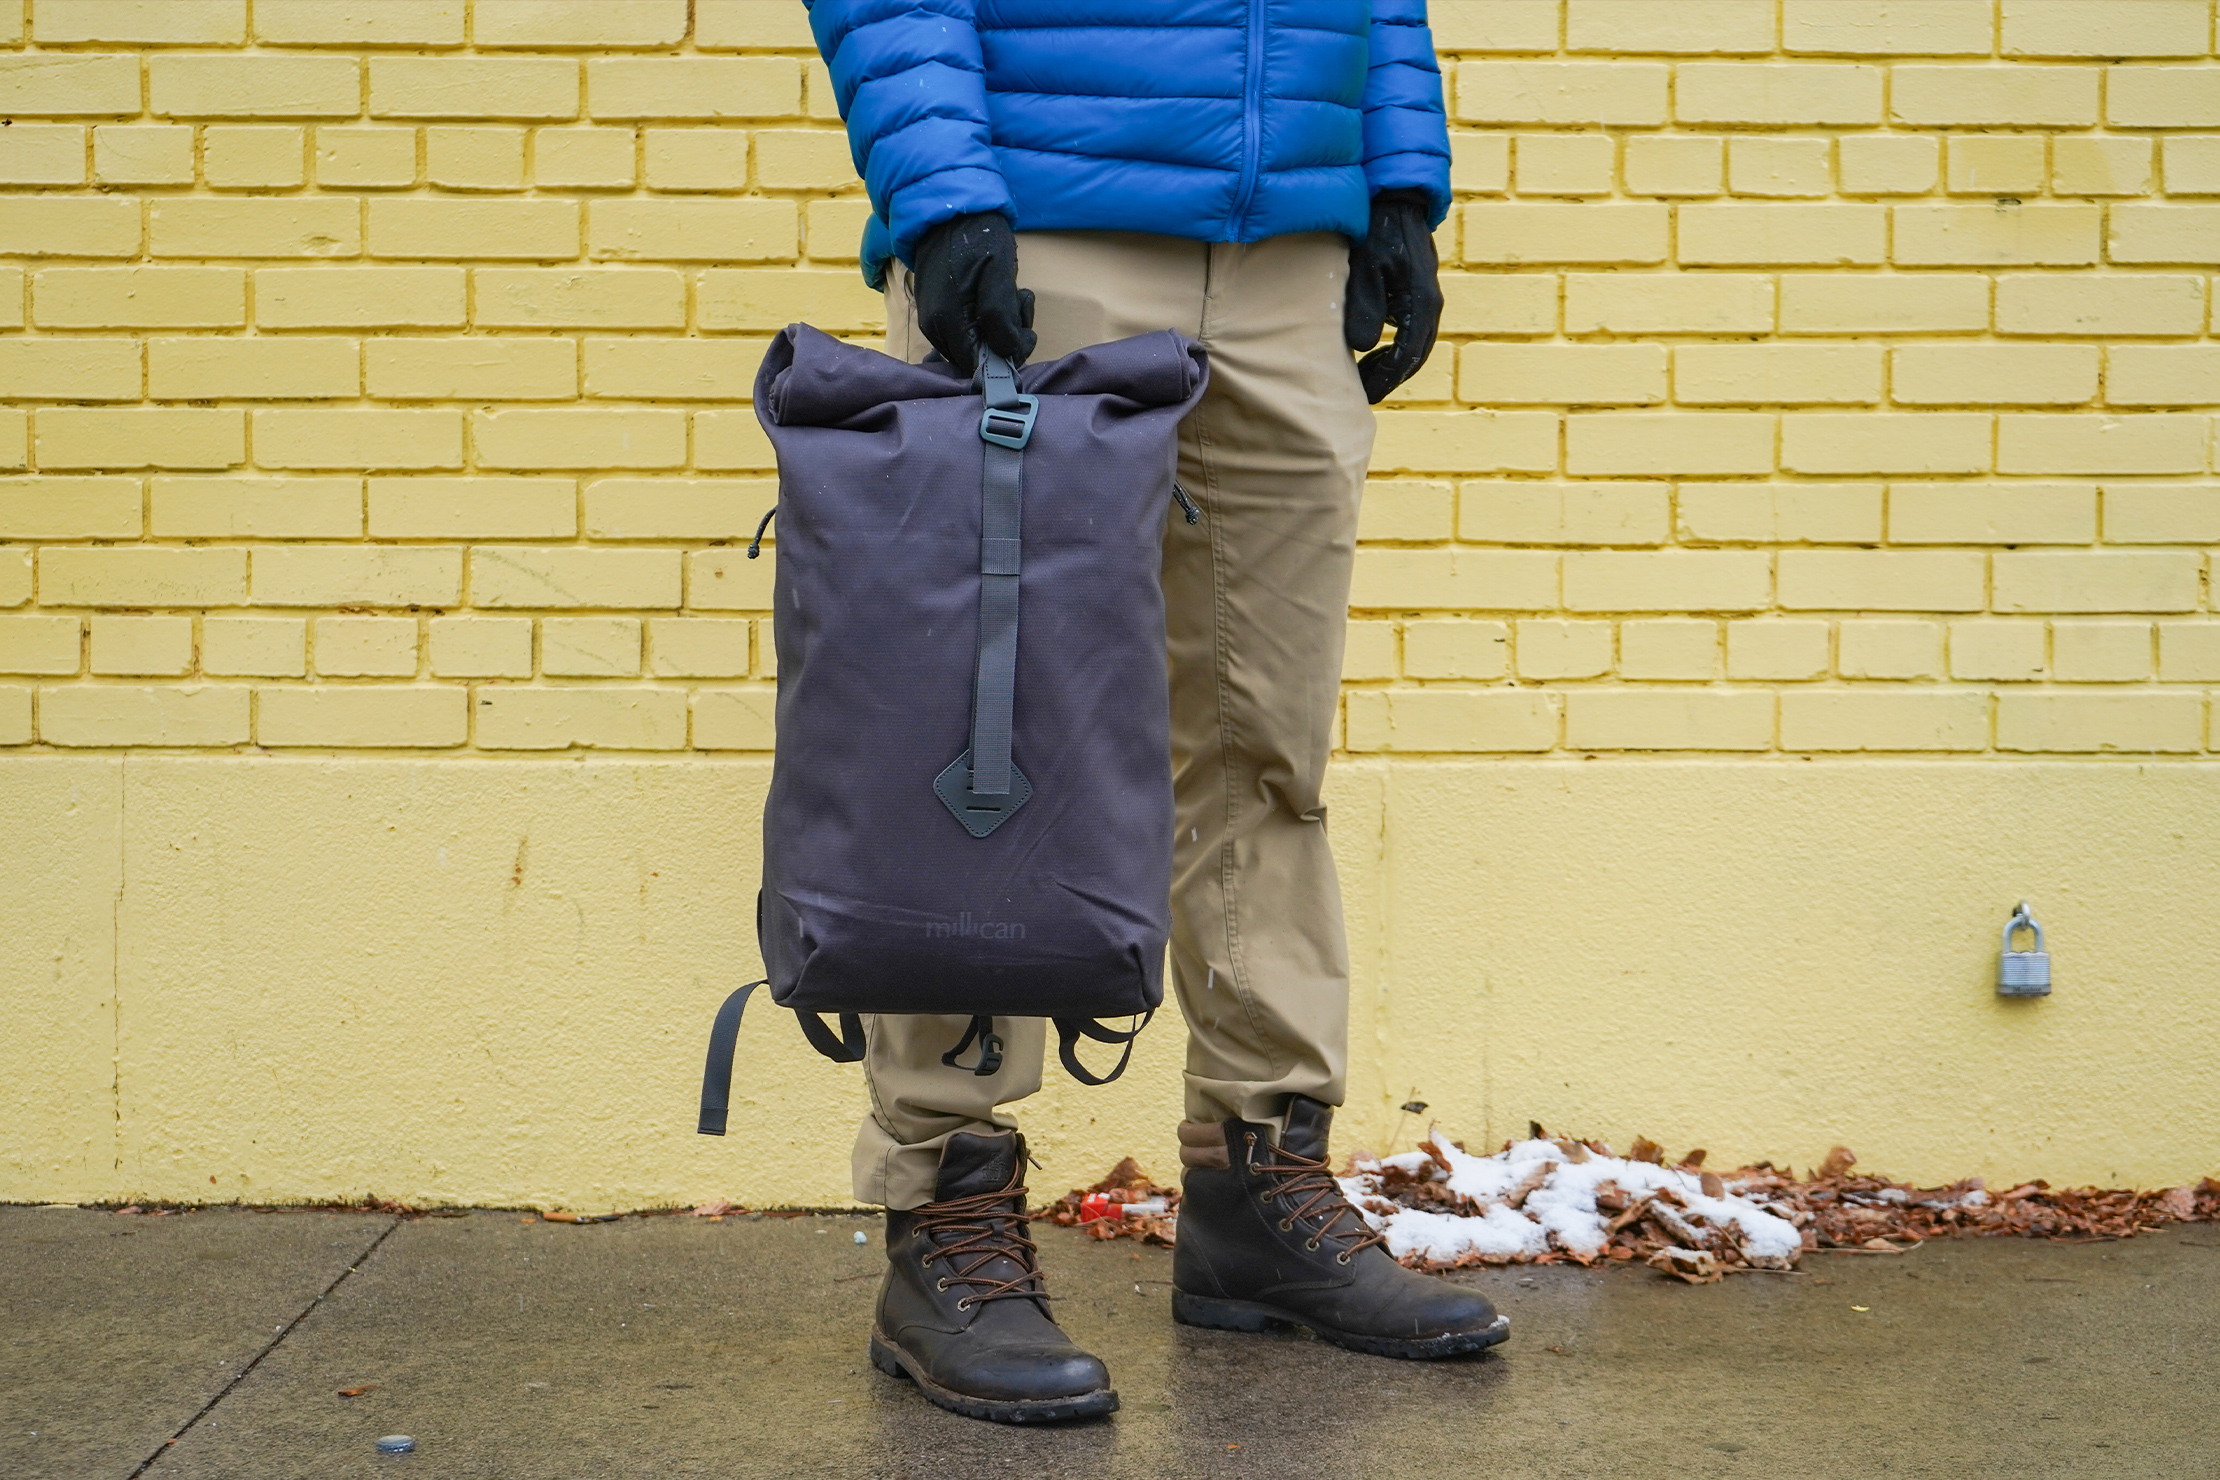 Millican Smith Roll Pack 18L   Single-handed carry using the built-in loop